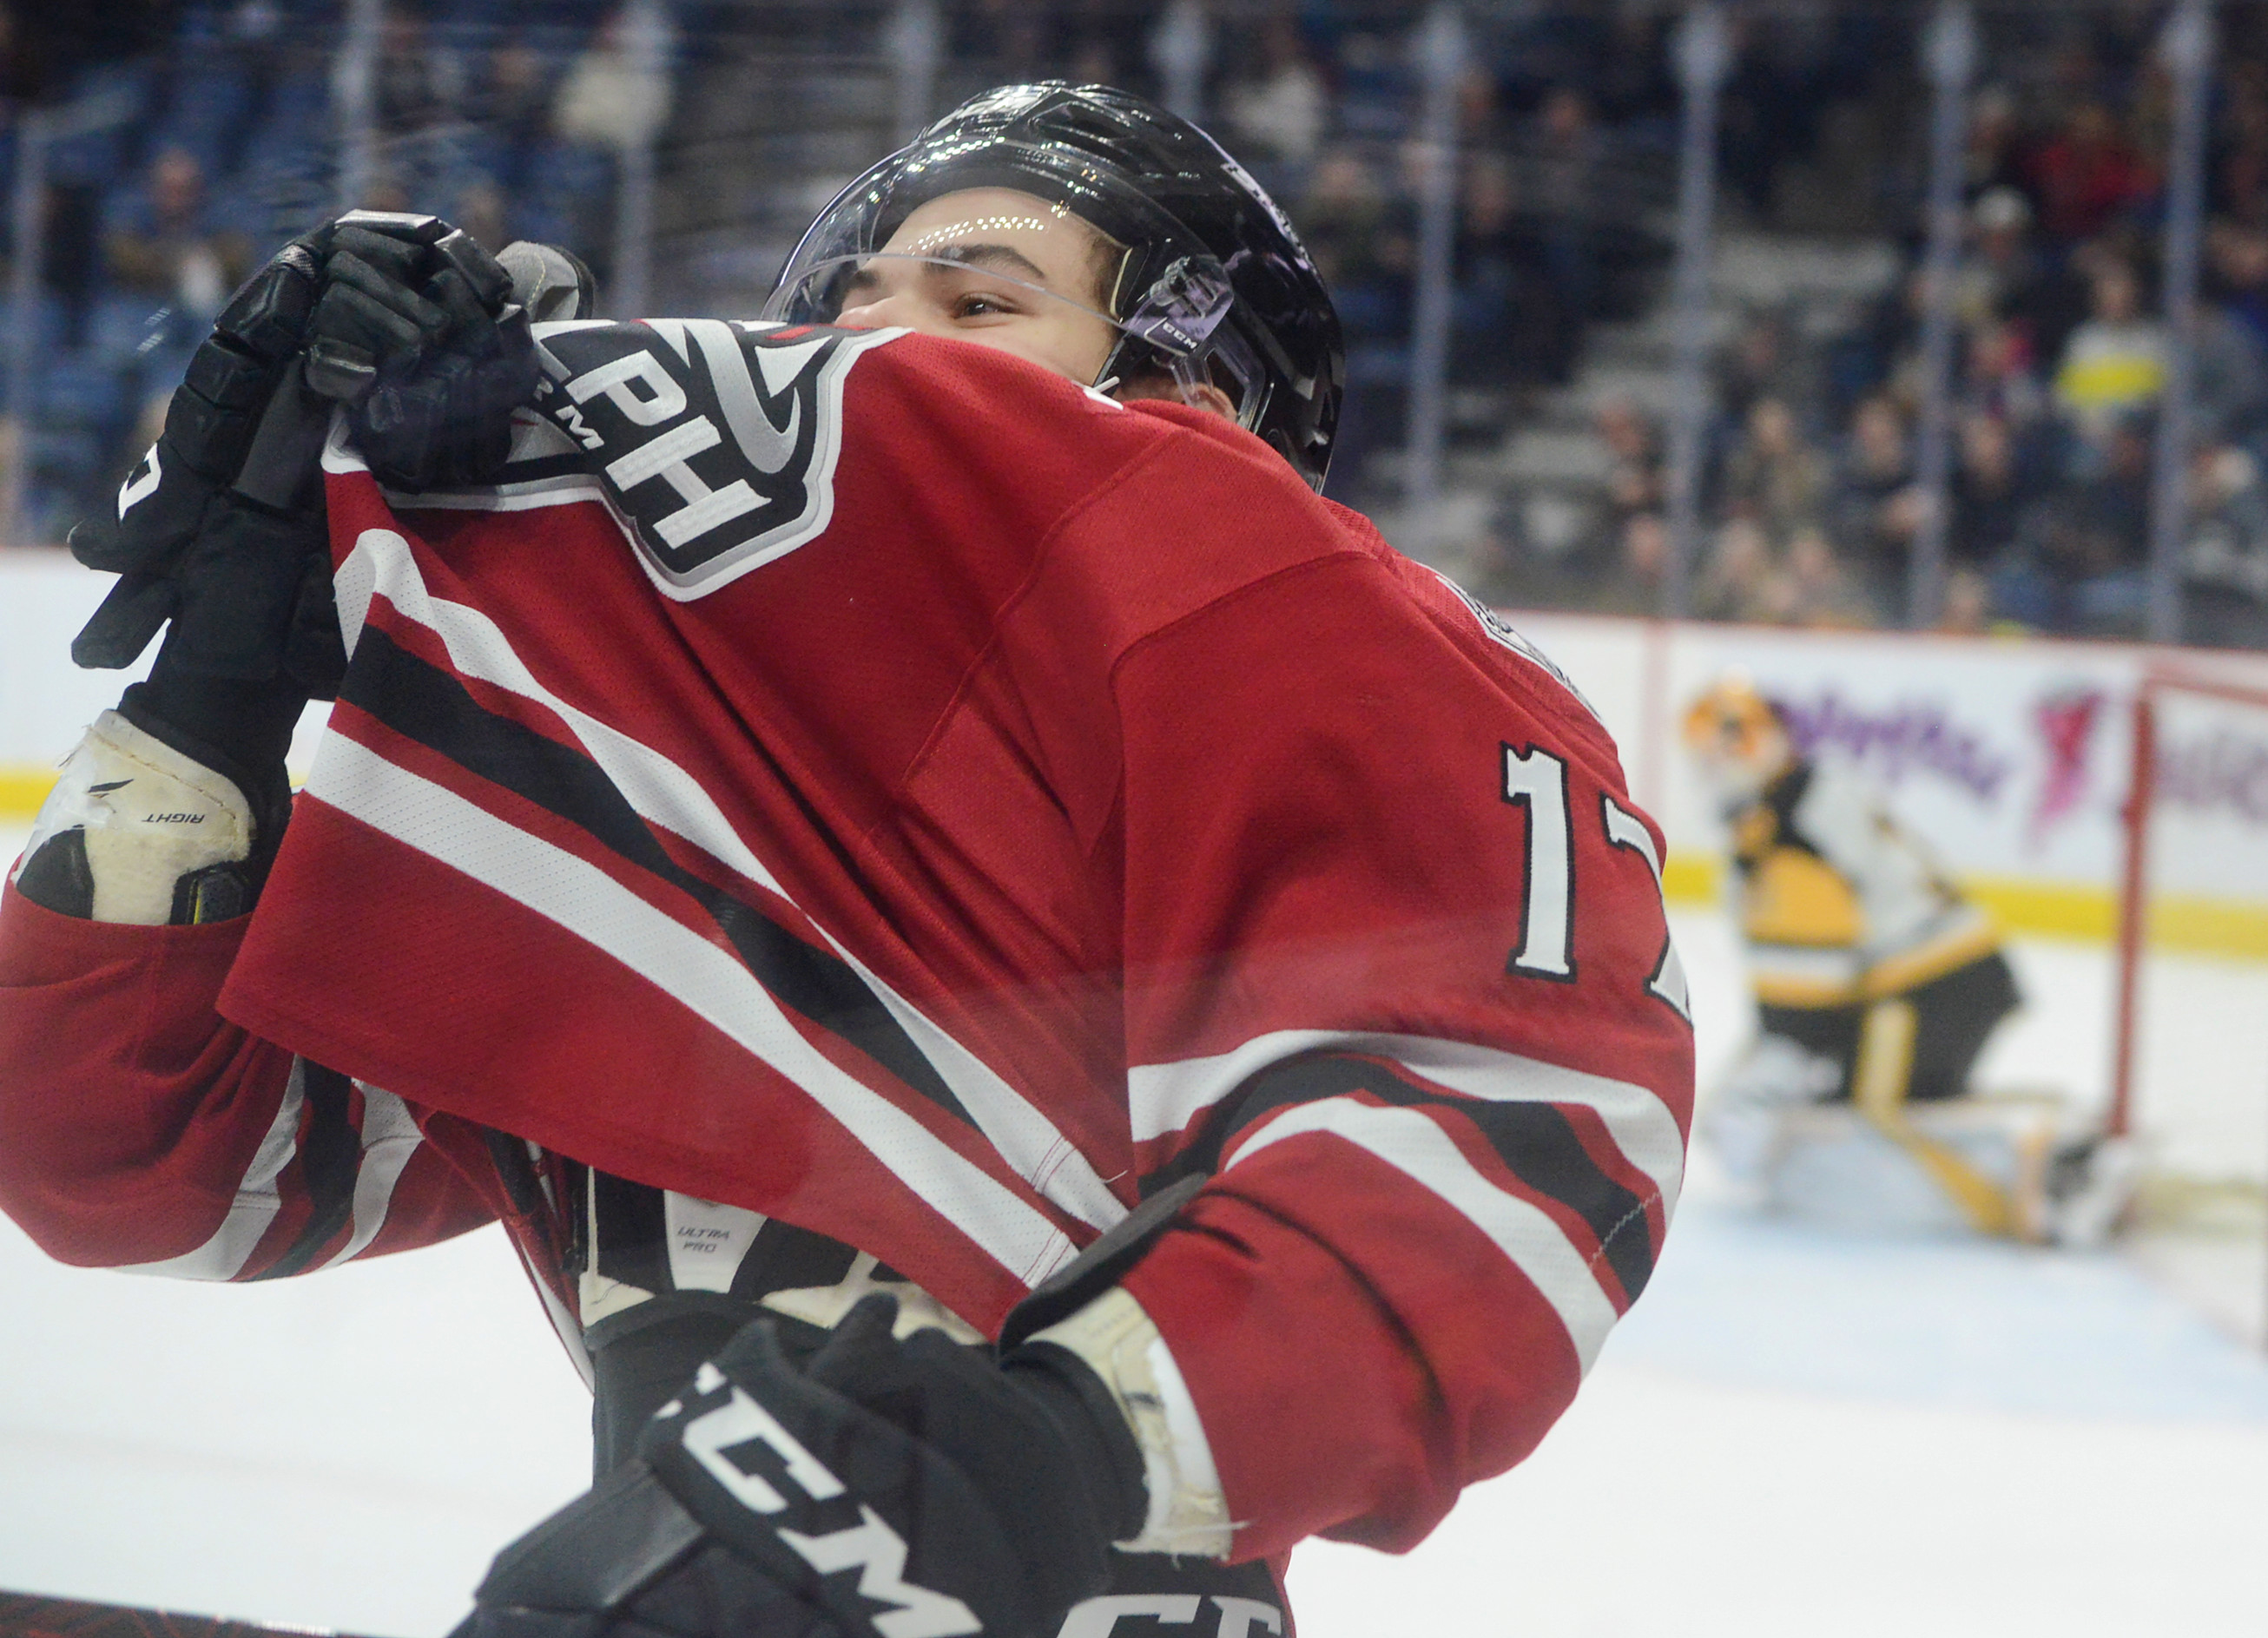 Guelph Storm comes up short in shootout loss